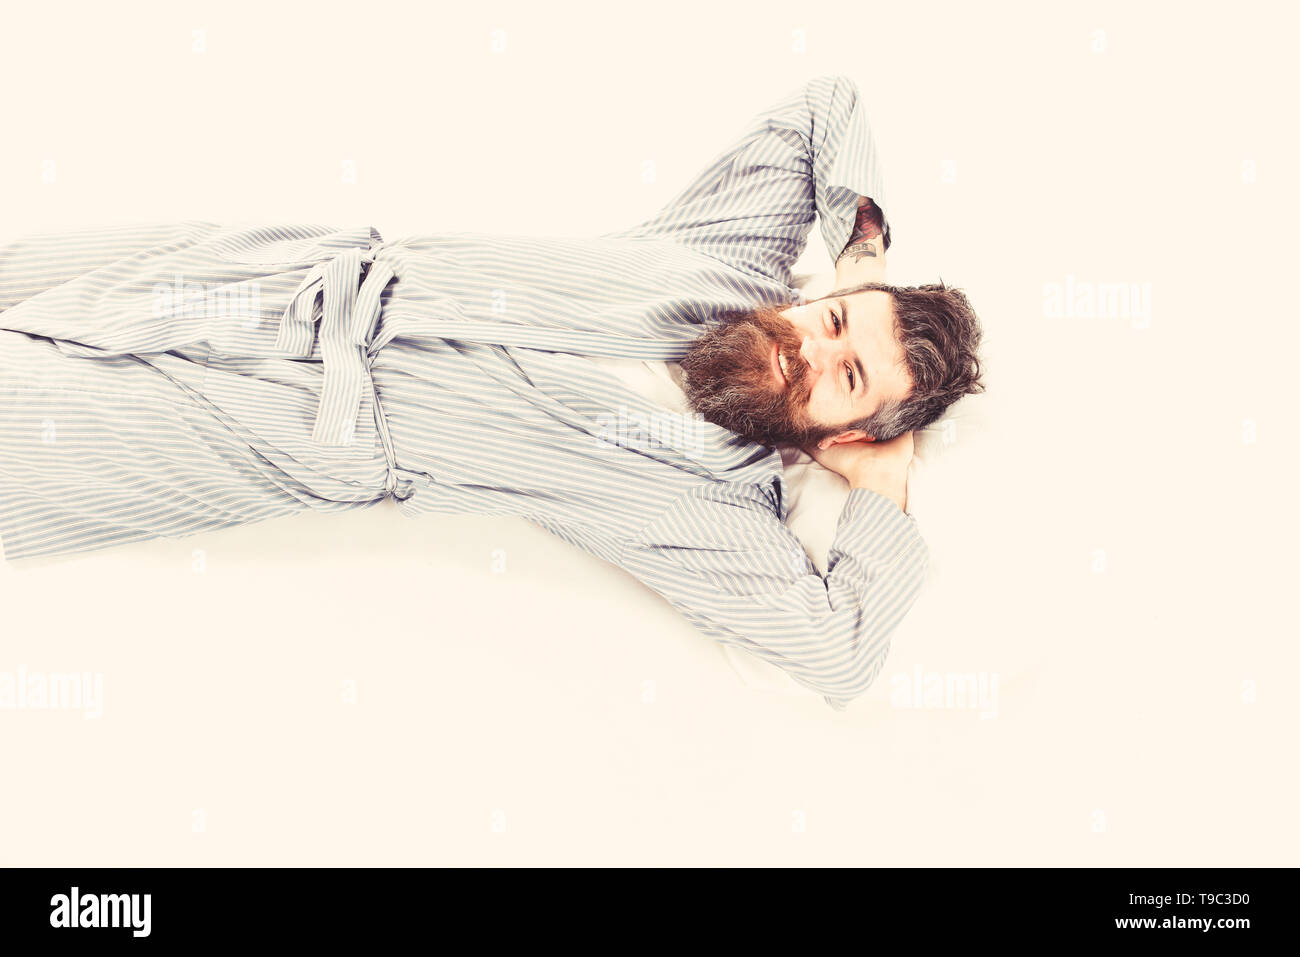 Slept well oncept. Man relax and having rest, white background. Man with smiling happy face wake up, lay on bed, put hands behind head, top view. Hipster with beard, mustache and messy hair slept well - Stock Image